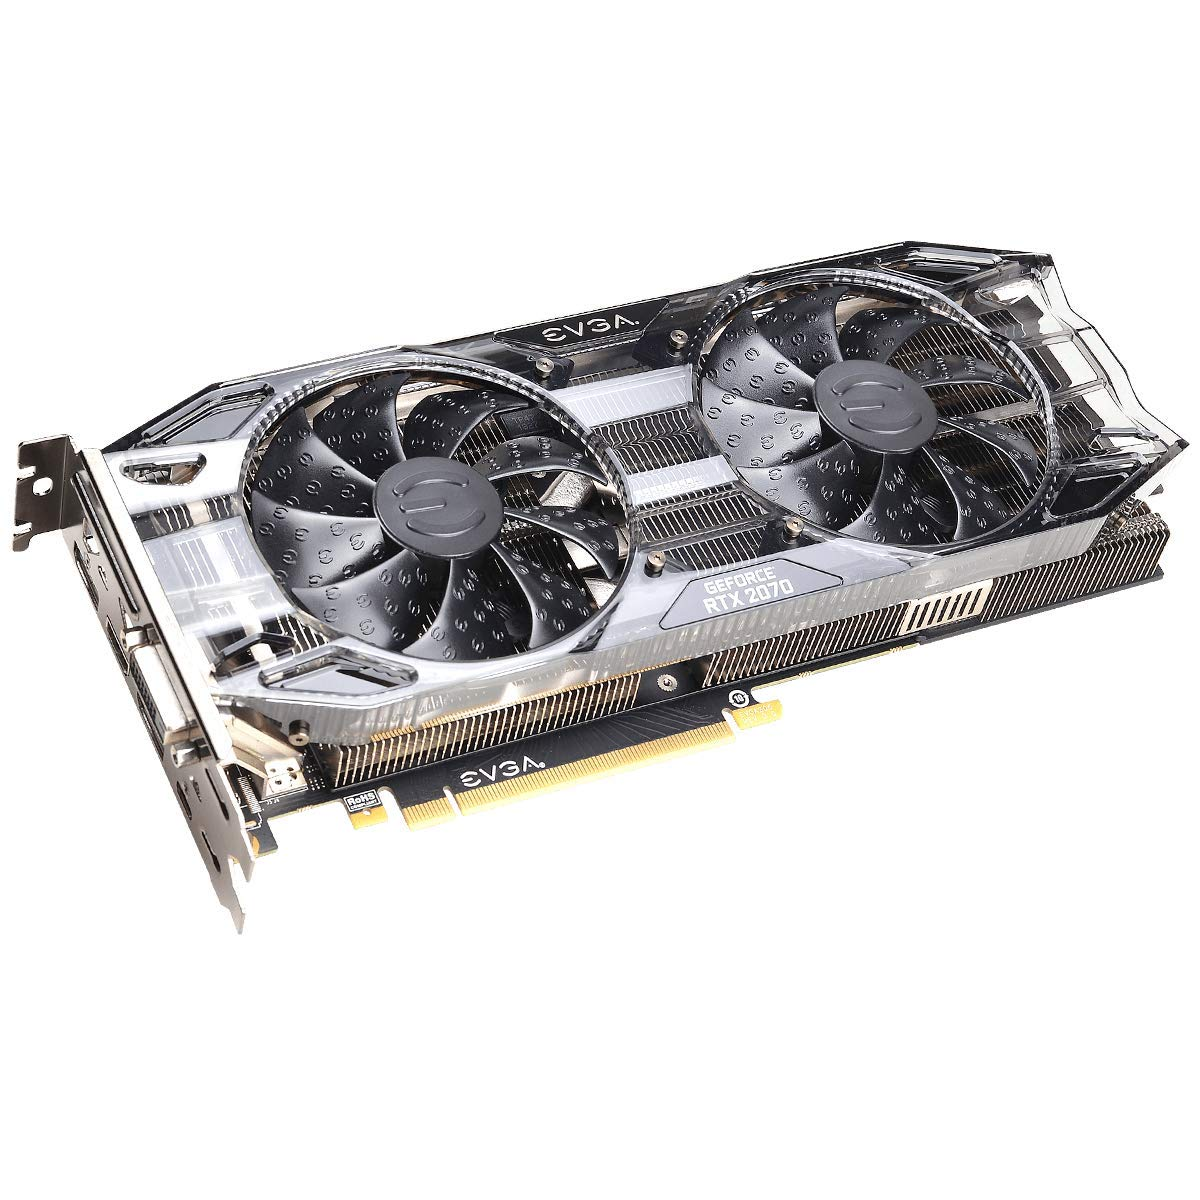 EVGA GeForce RTX 2070 Black Gaming,8GB GDDR6, Dual HDB Fans Graphics Card 08G-P4-1071-KR by EVGA (Image #4)